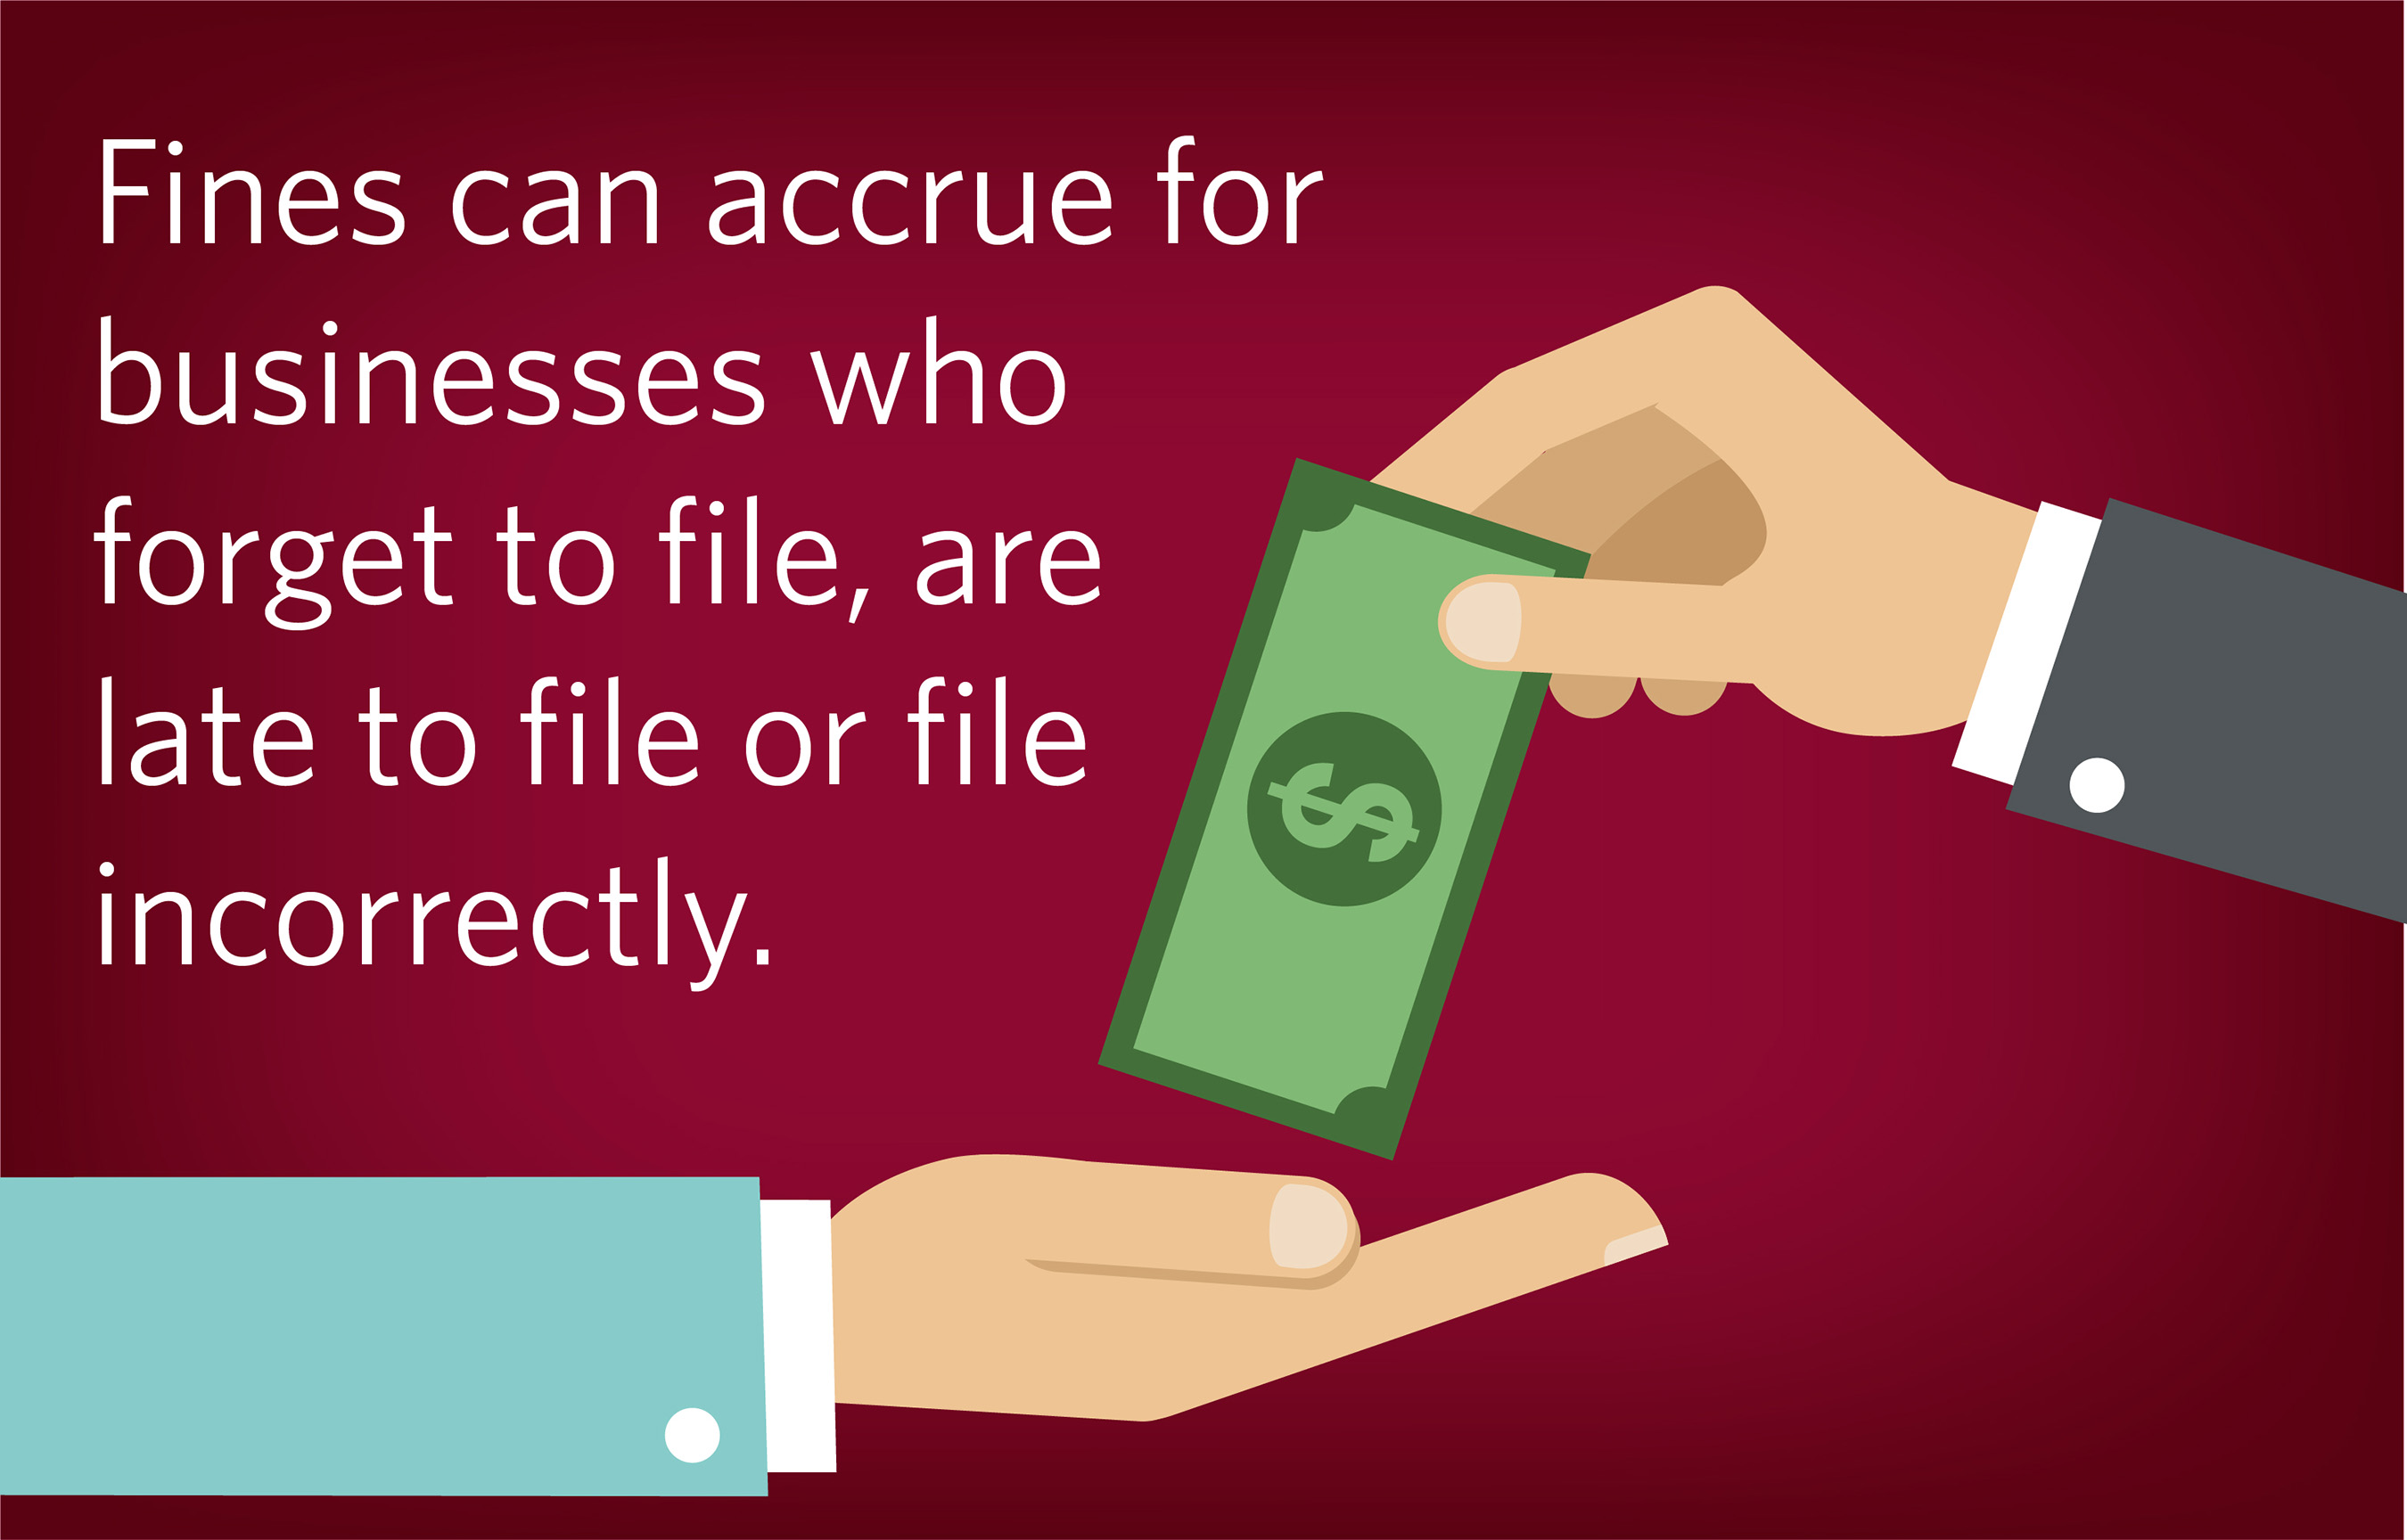 Depending on the form, filers can be penalized up to $500 for failure to file or furnish correct information. Greatland Corporation has a team of compliance experts to ensure your business won't receive fines.